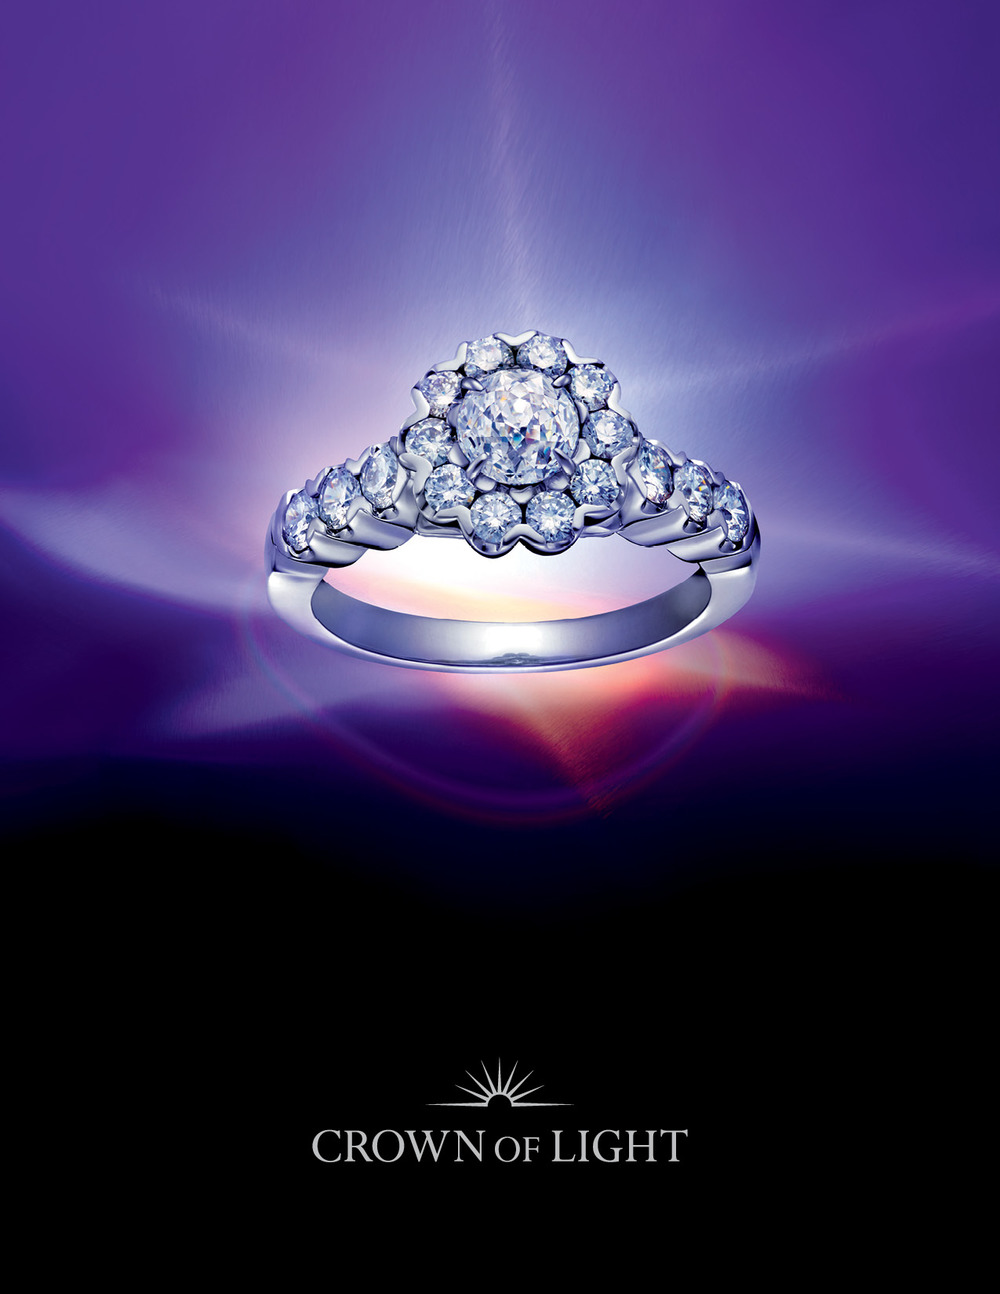 Luxury Fine Jewelry Brand Crown of Light Logo Design, Packaging Design, and Print Collateral, In-Store Displays, and Advertising Creative Direction by Benard Creative.